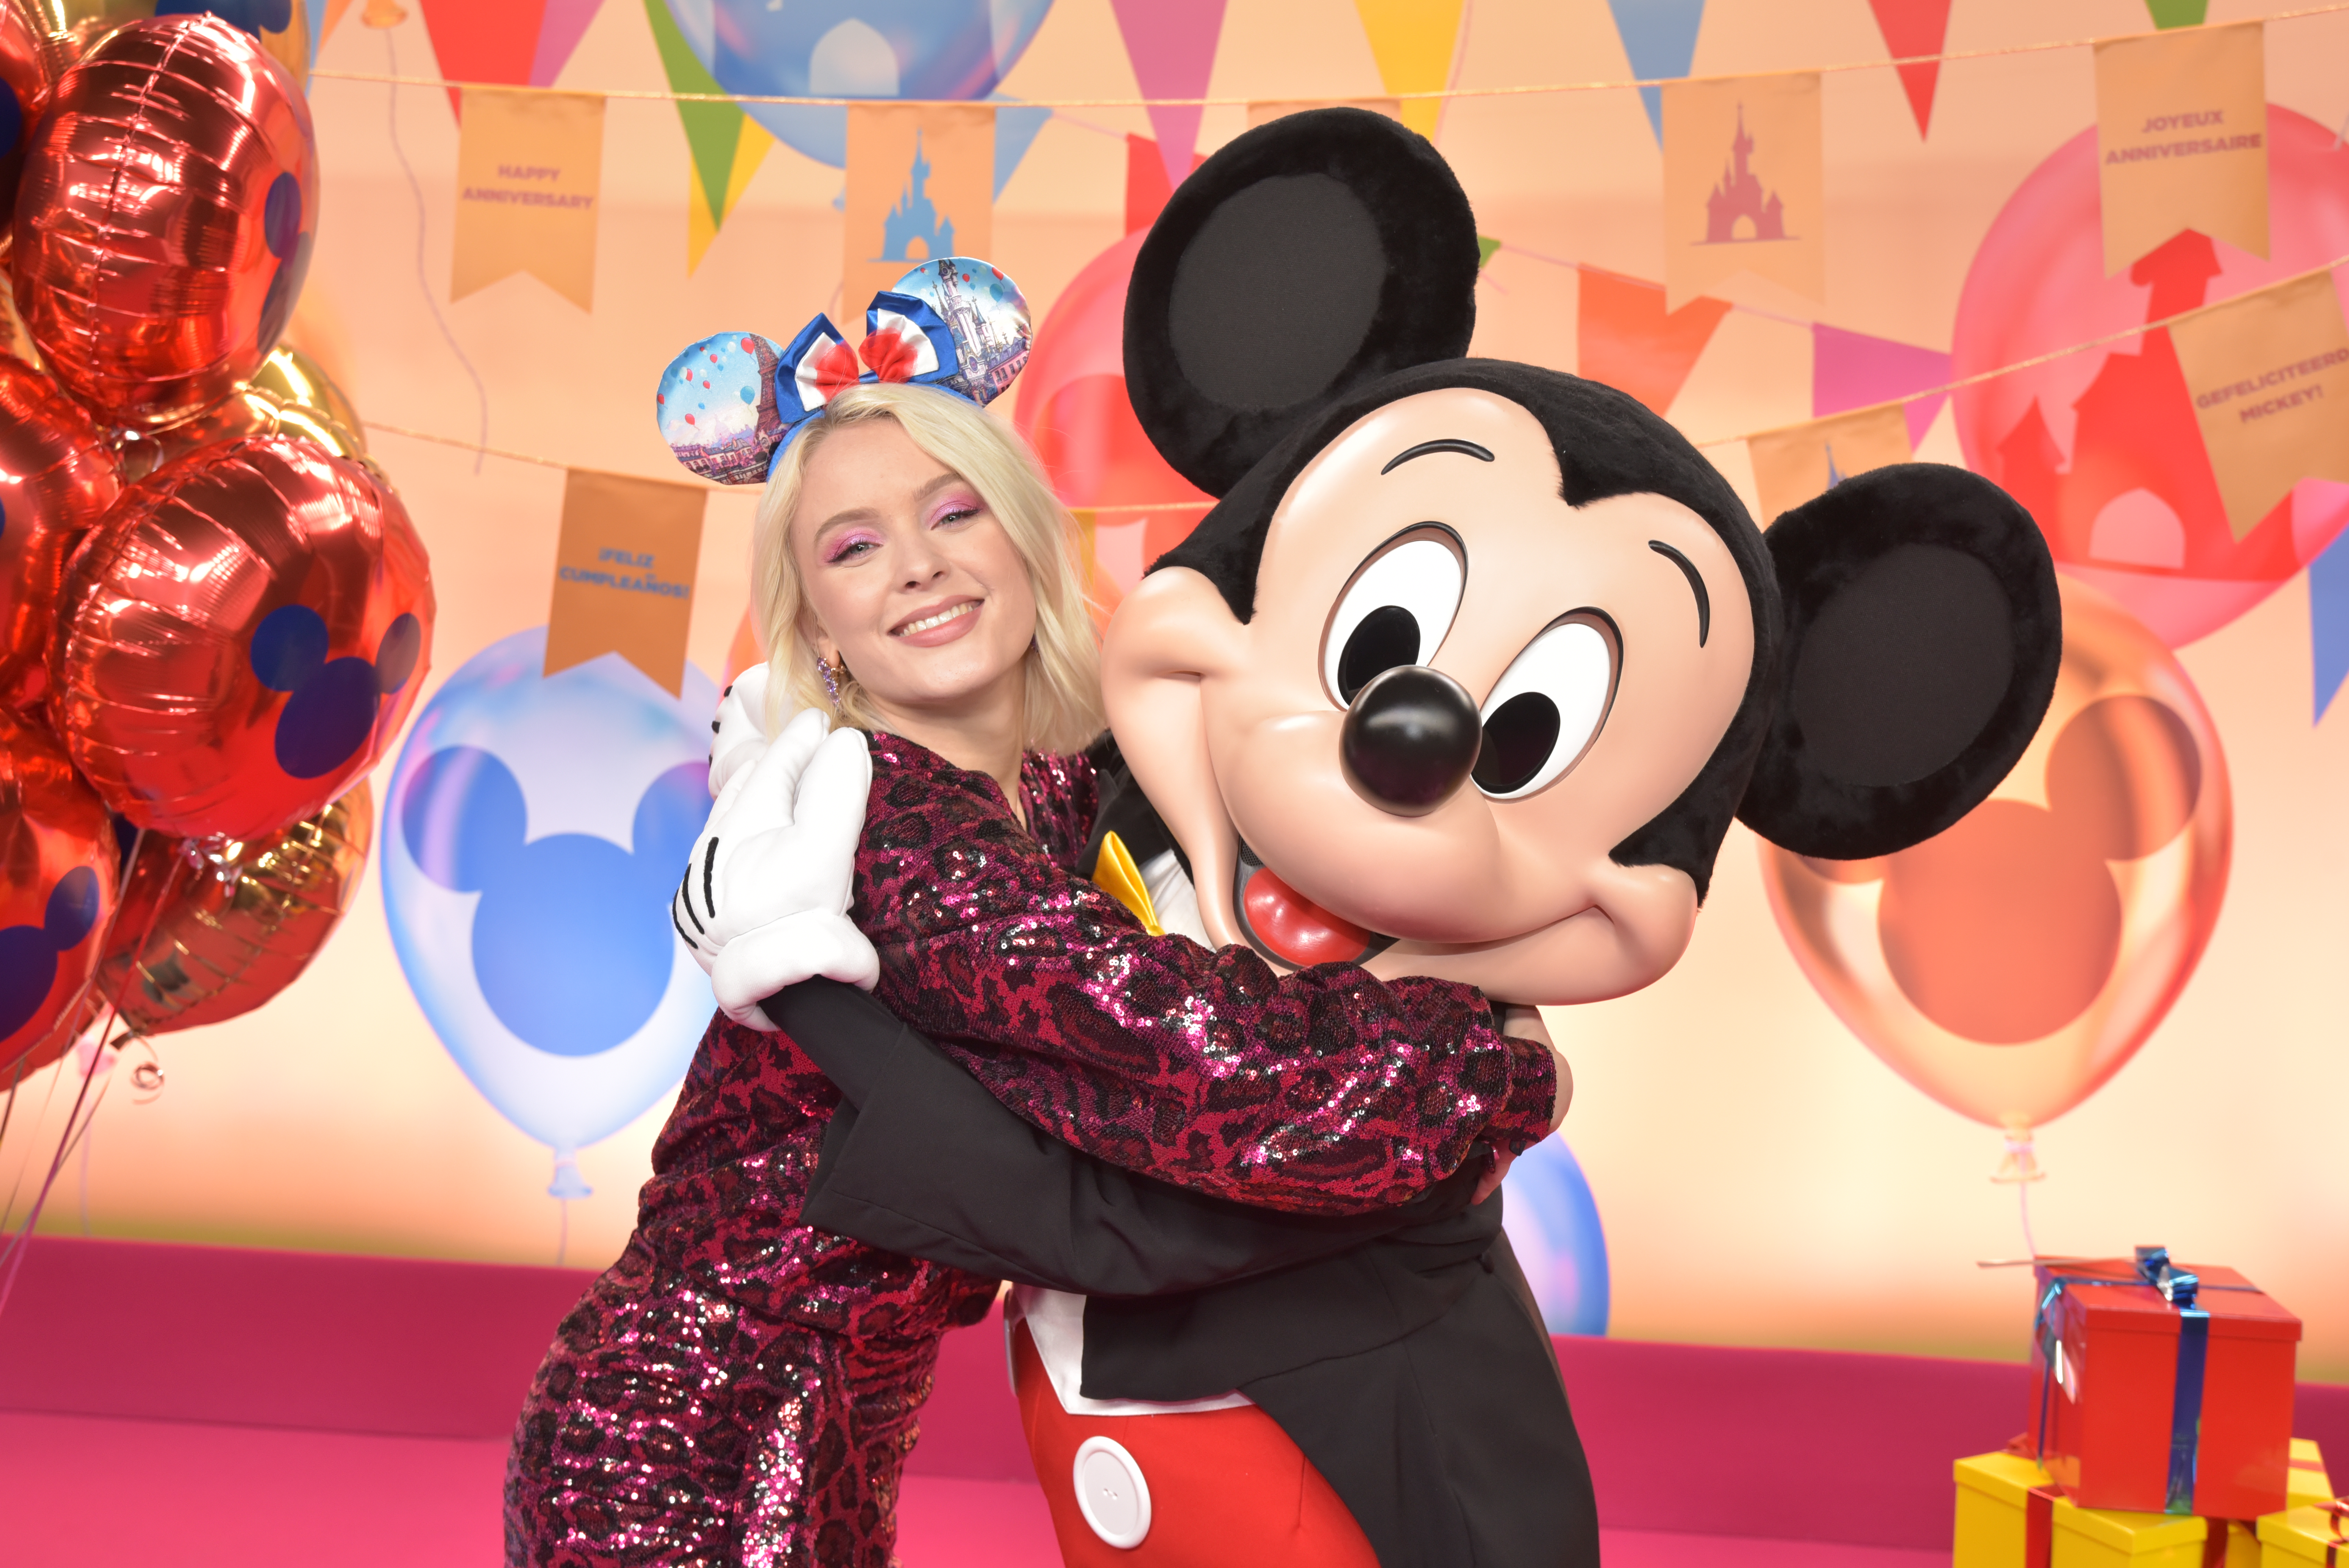 Celebrities at Disneyland Paris to celebrate 90 years of fun with Mickey launching an outstanding Christmas Season